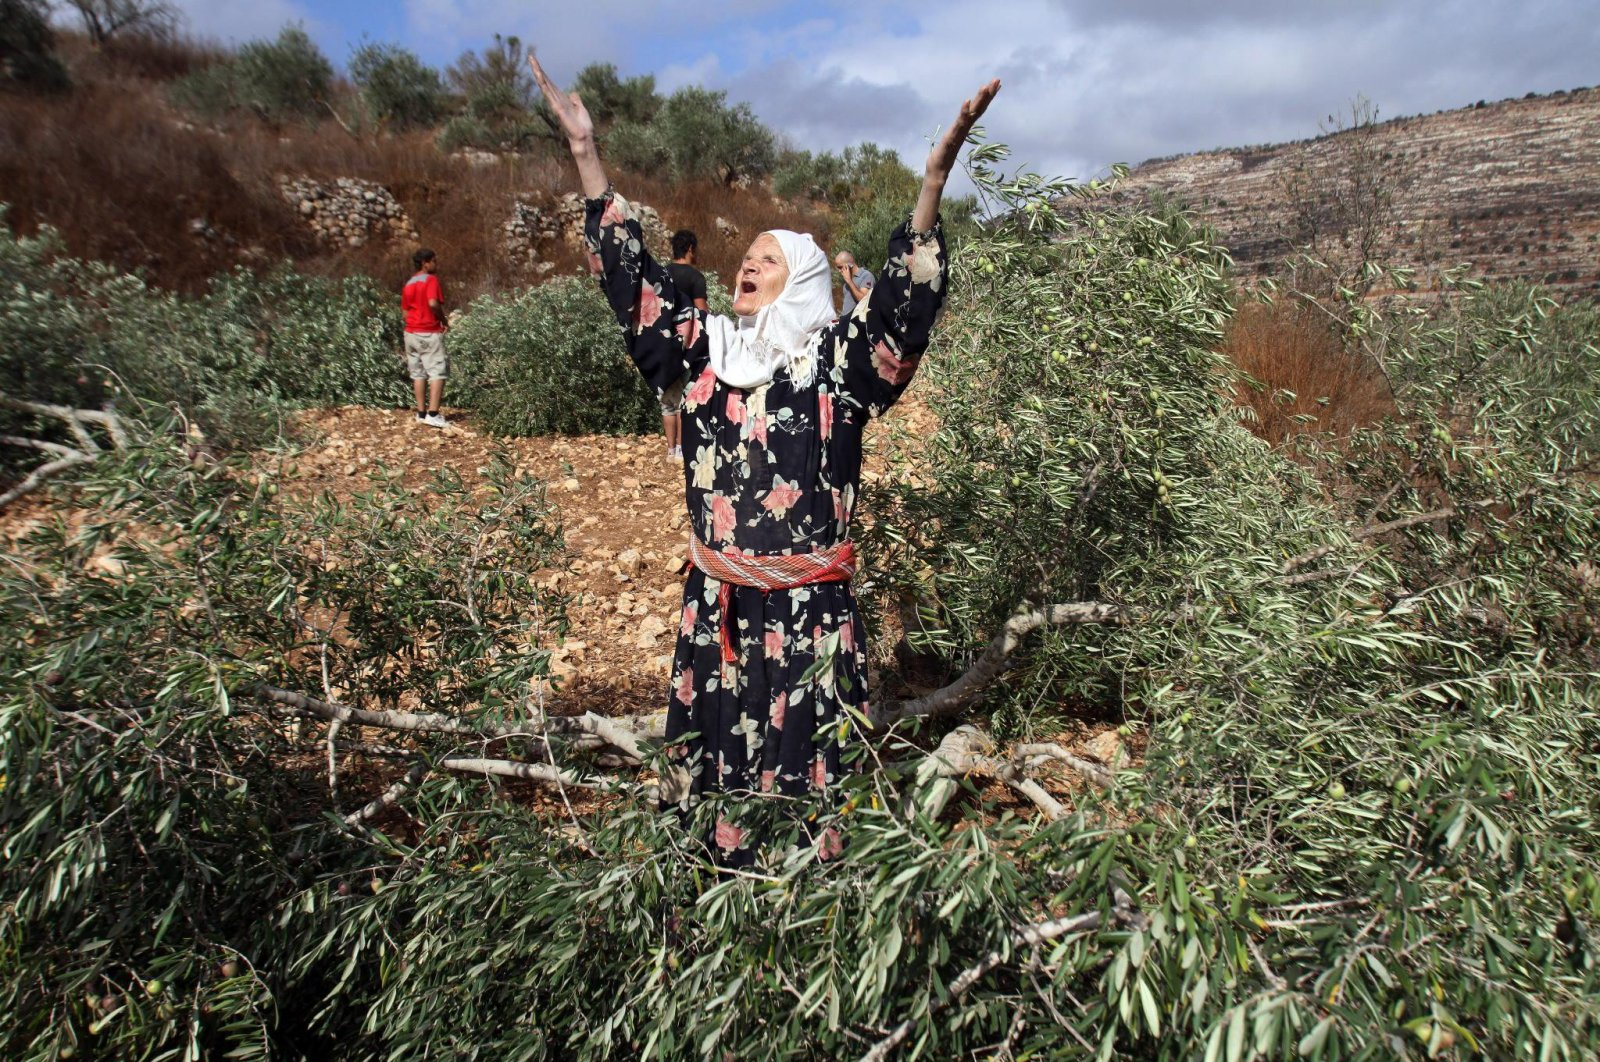 A Palestinian woman throws her arms up in the air in despair next to one of her olive trees in the occupied West Bank, Oct. 23, 2010. (EPA Photo)